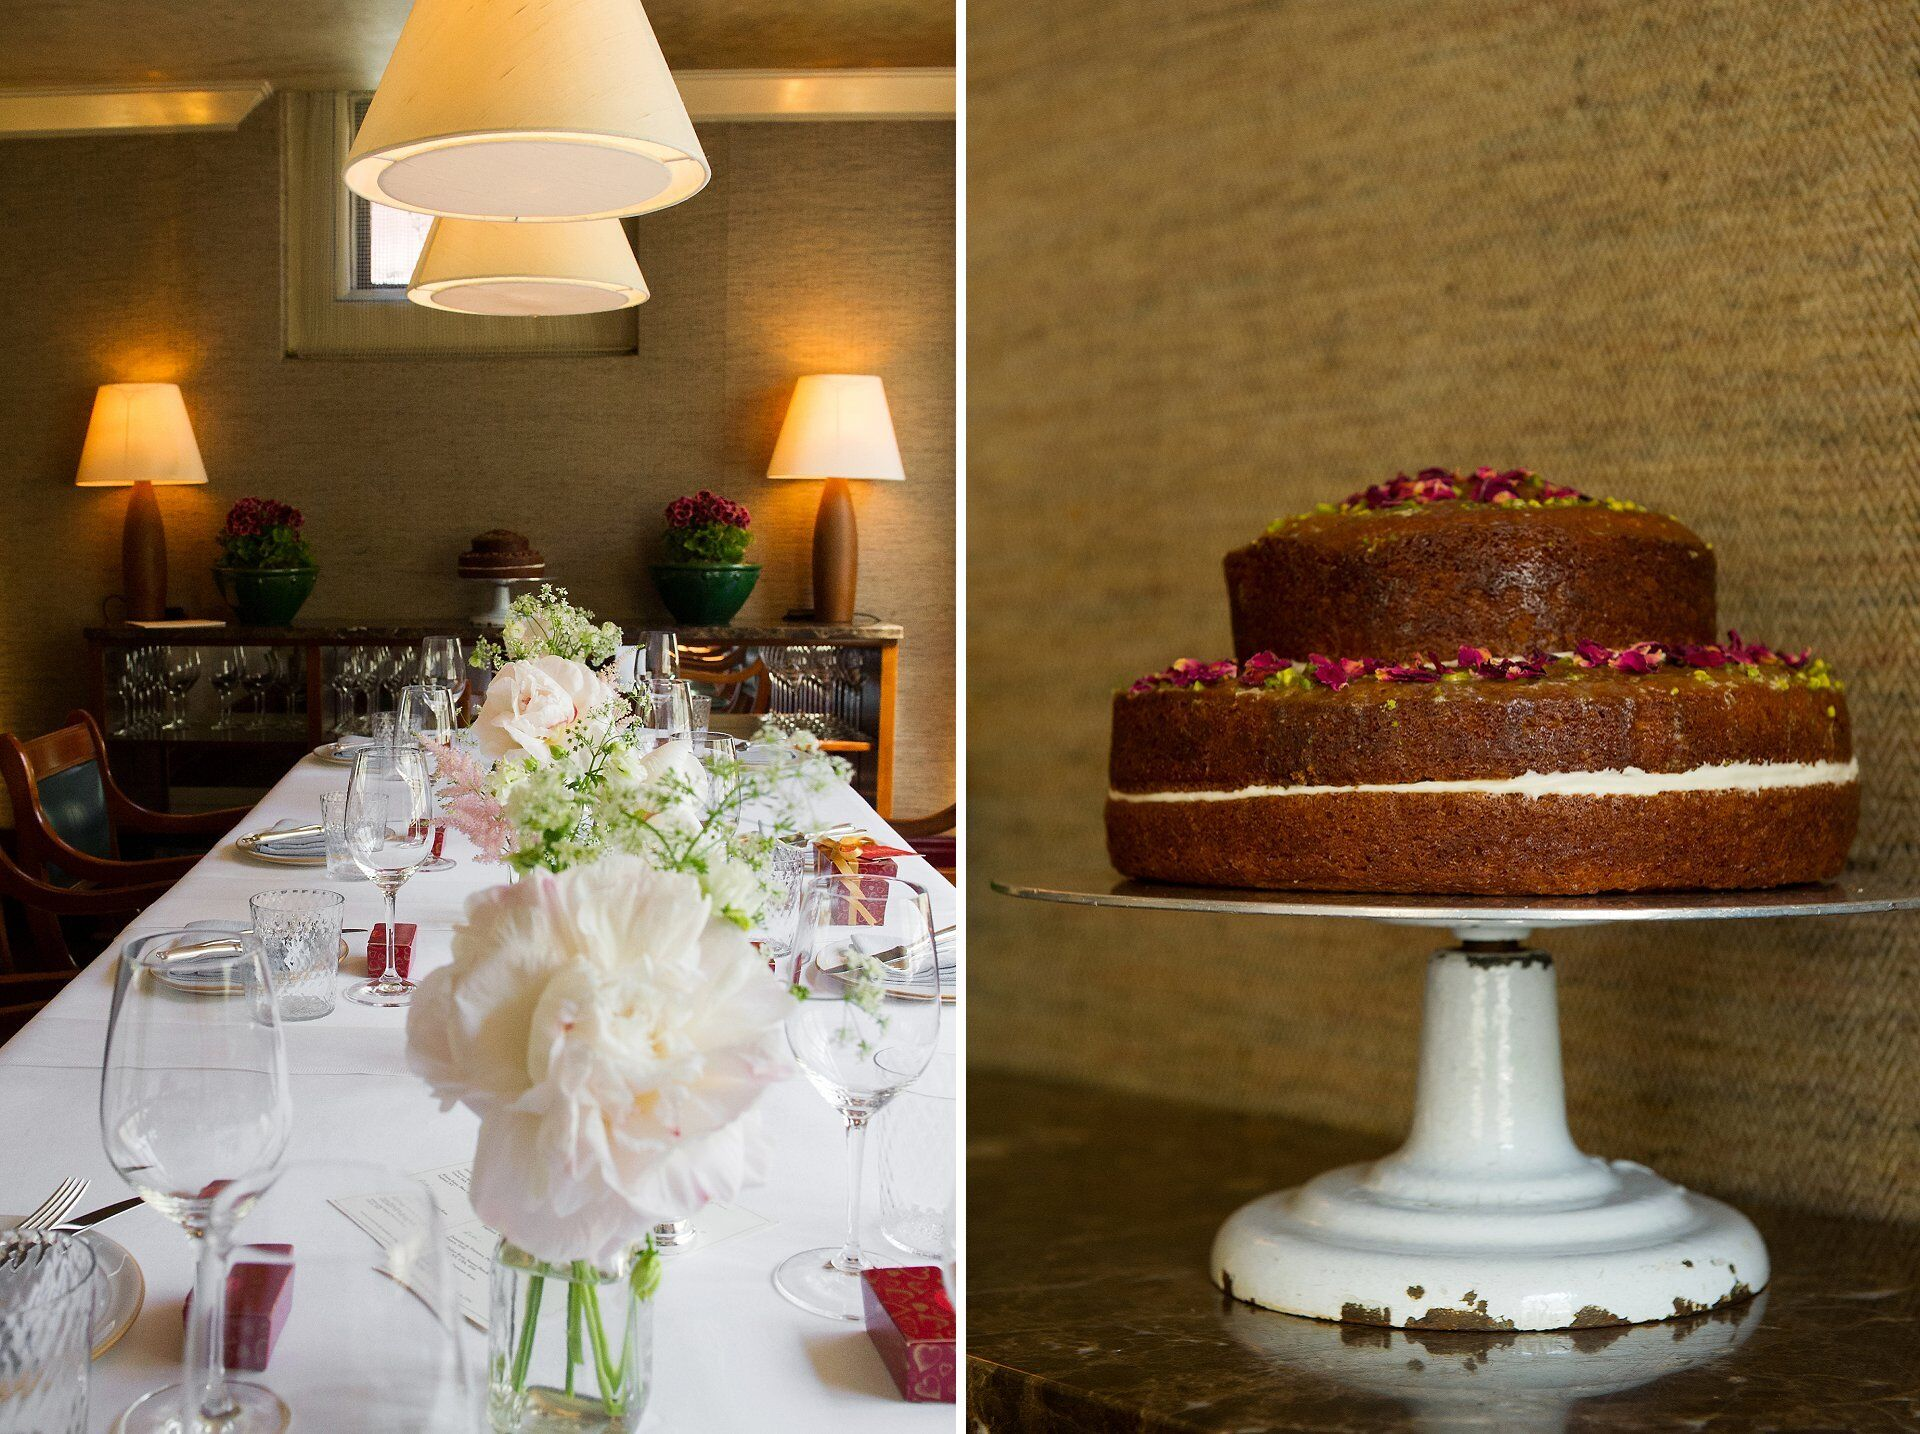 orange blossom and pistachio wedding cake made by Honeypie Bakery in Kensington London at chiltern firehouse for private dining wedding